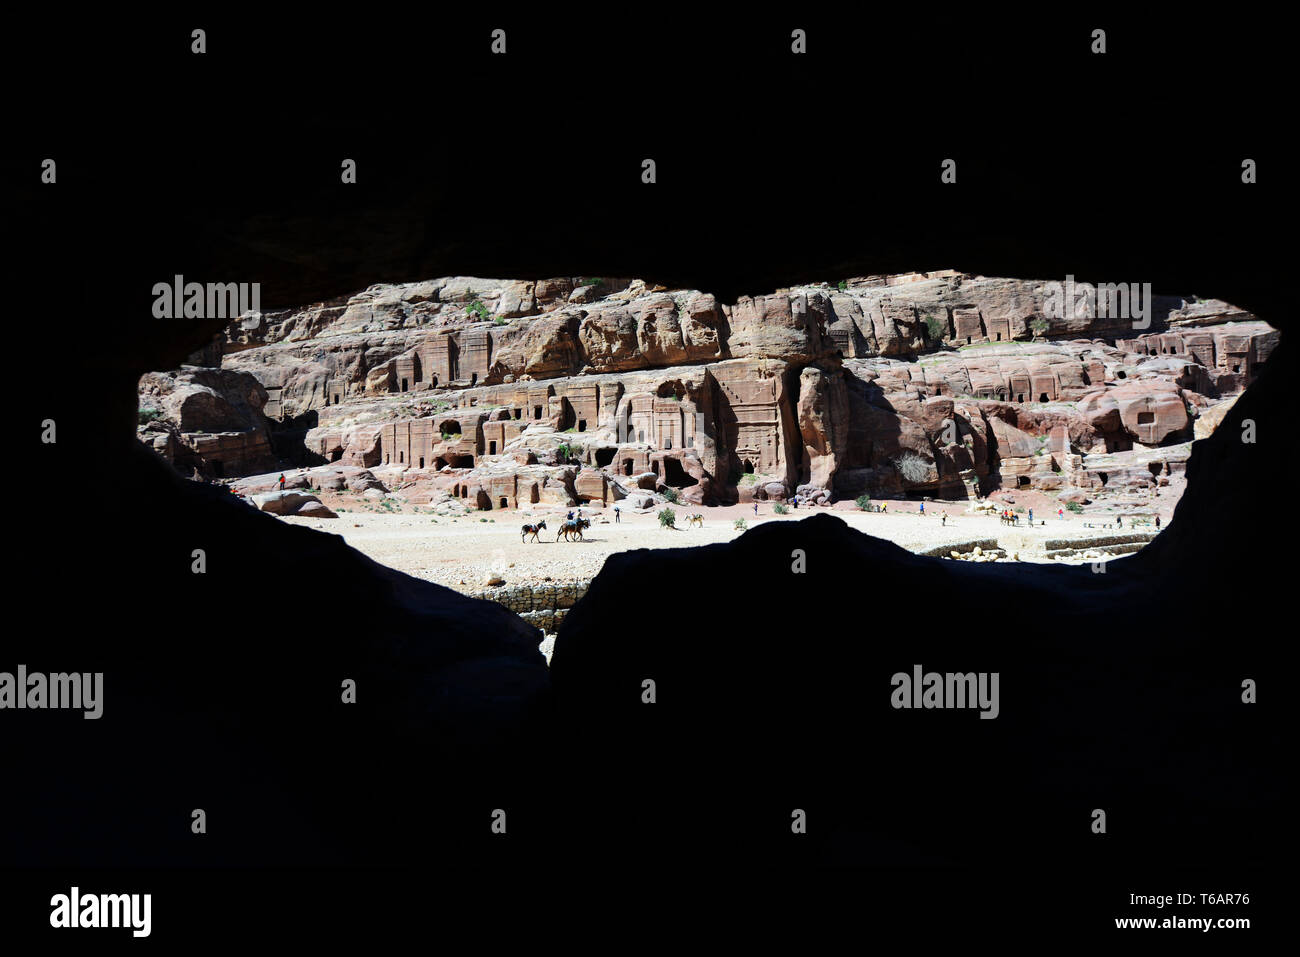 A view of the Royal tombs in Petra, Jordan. Stock Photo